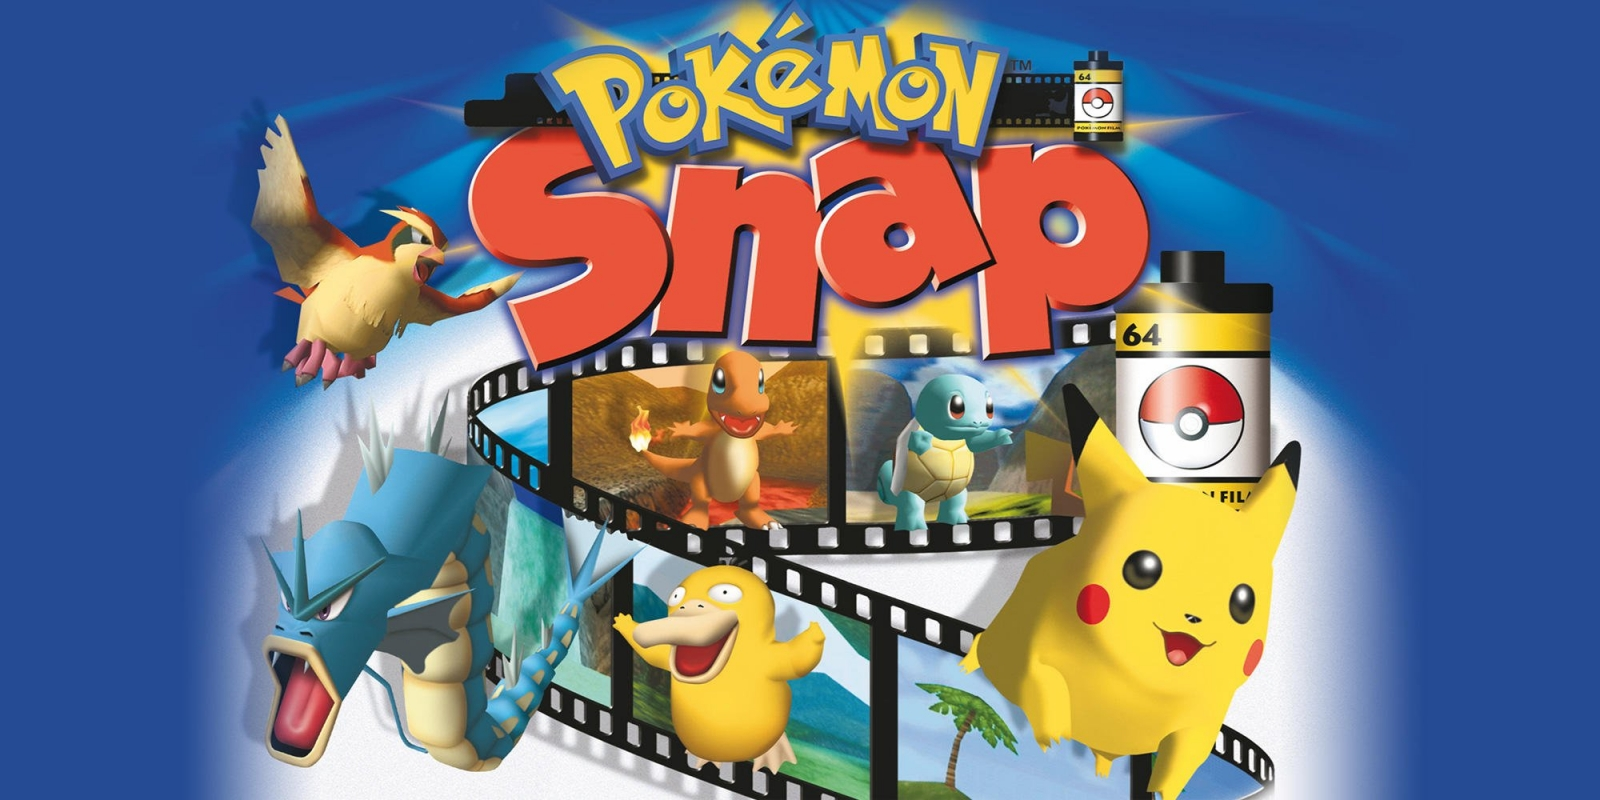 Pokemon Snap Wii U Virtual Console